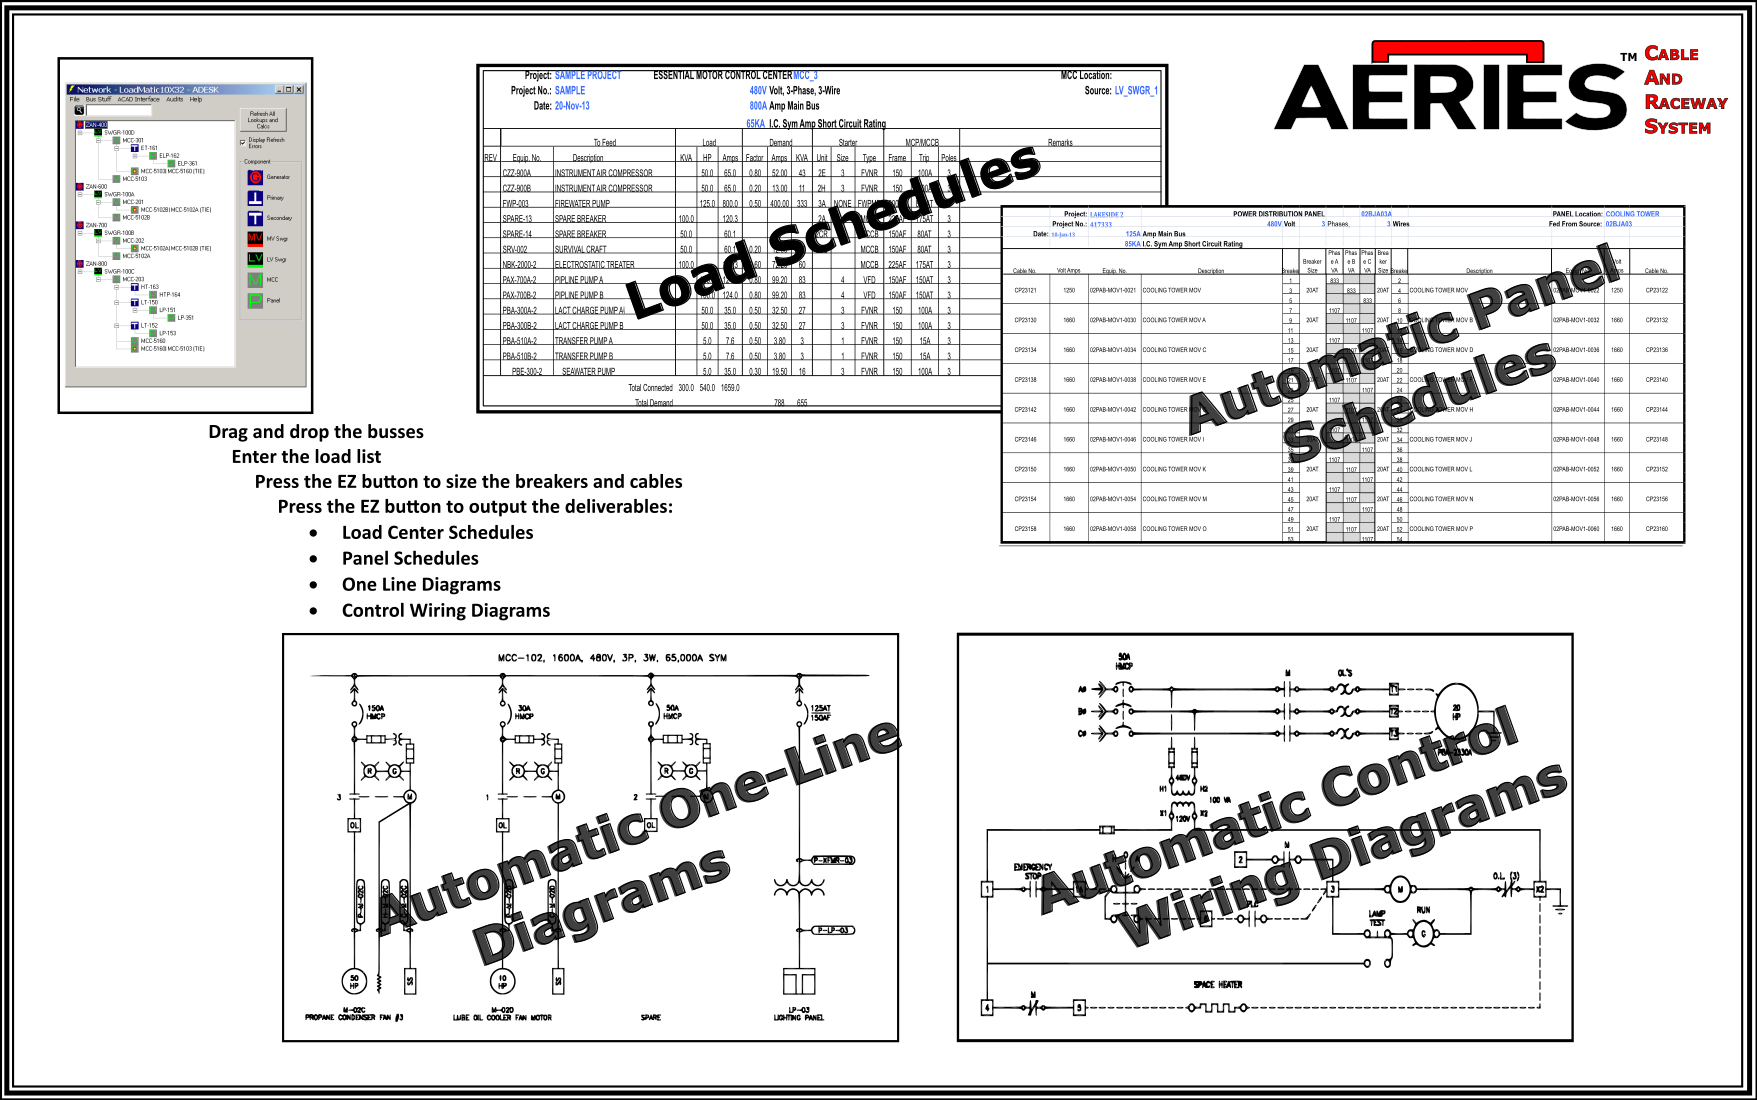 Image depicting deliverables automatically created by the LoadMatic software module including panel and load schedules, one-line diagrams, single line diagrams, and control wiring schematics.